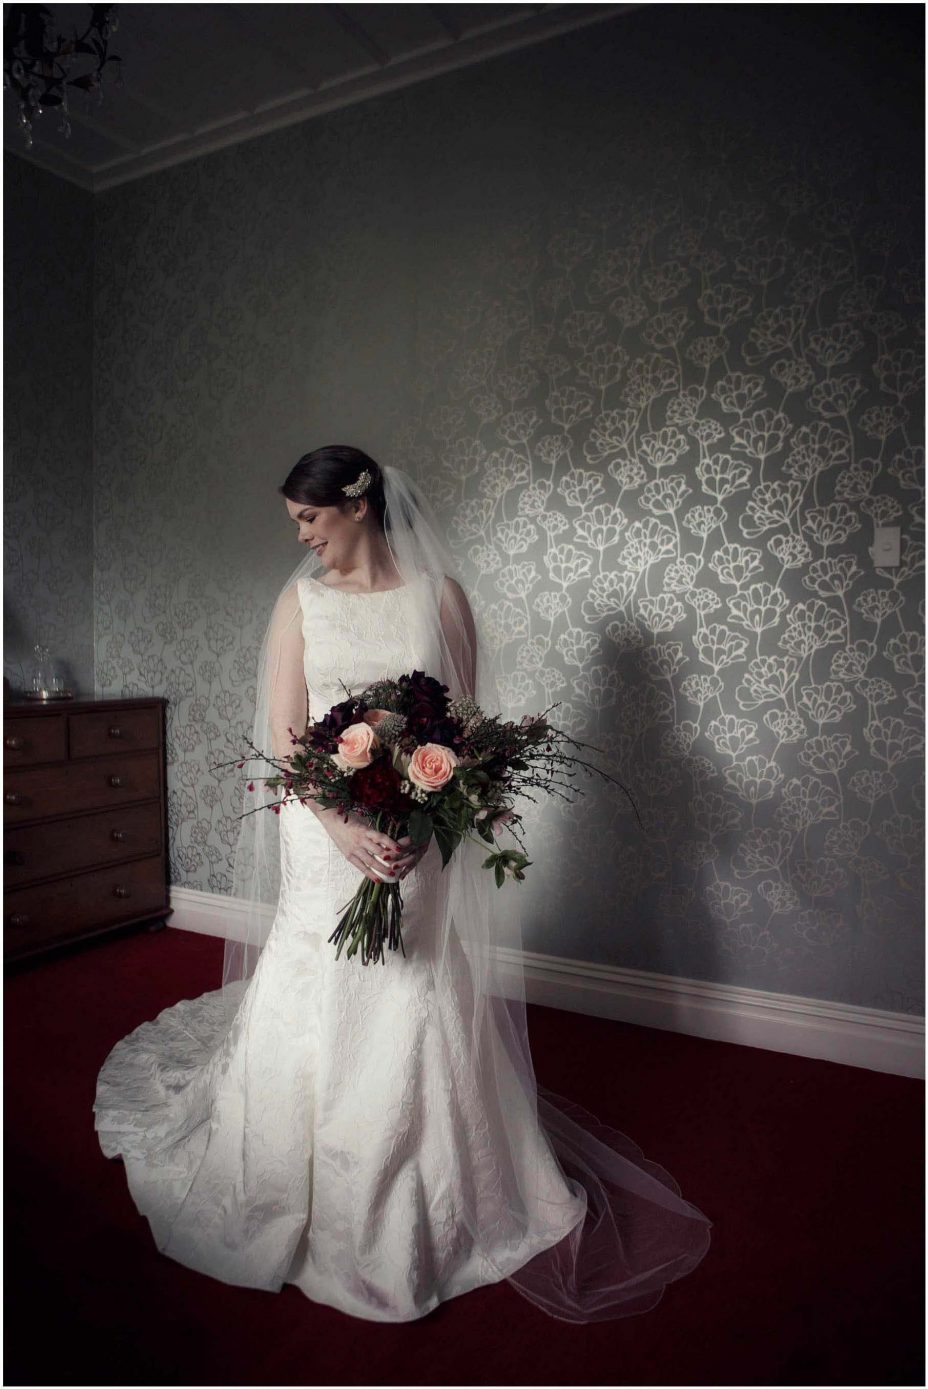 Bide wearing classical white wedding dress with train holding floral bouquet at Mount Eden Villa